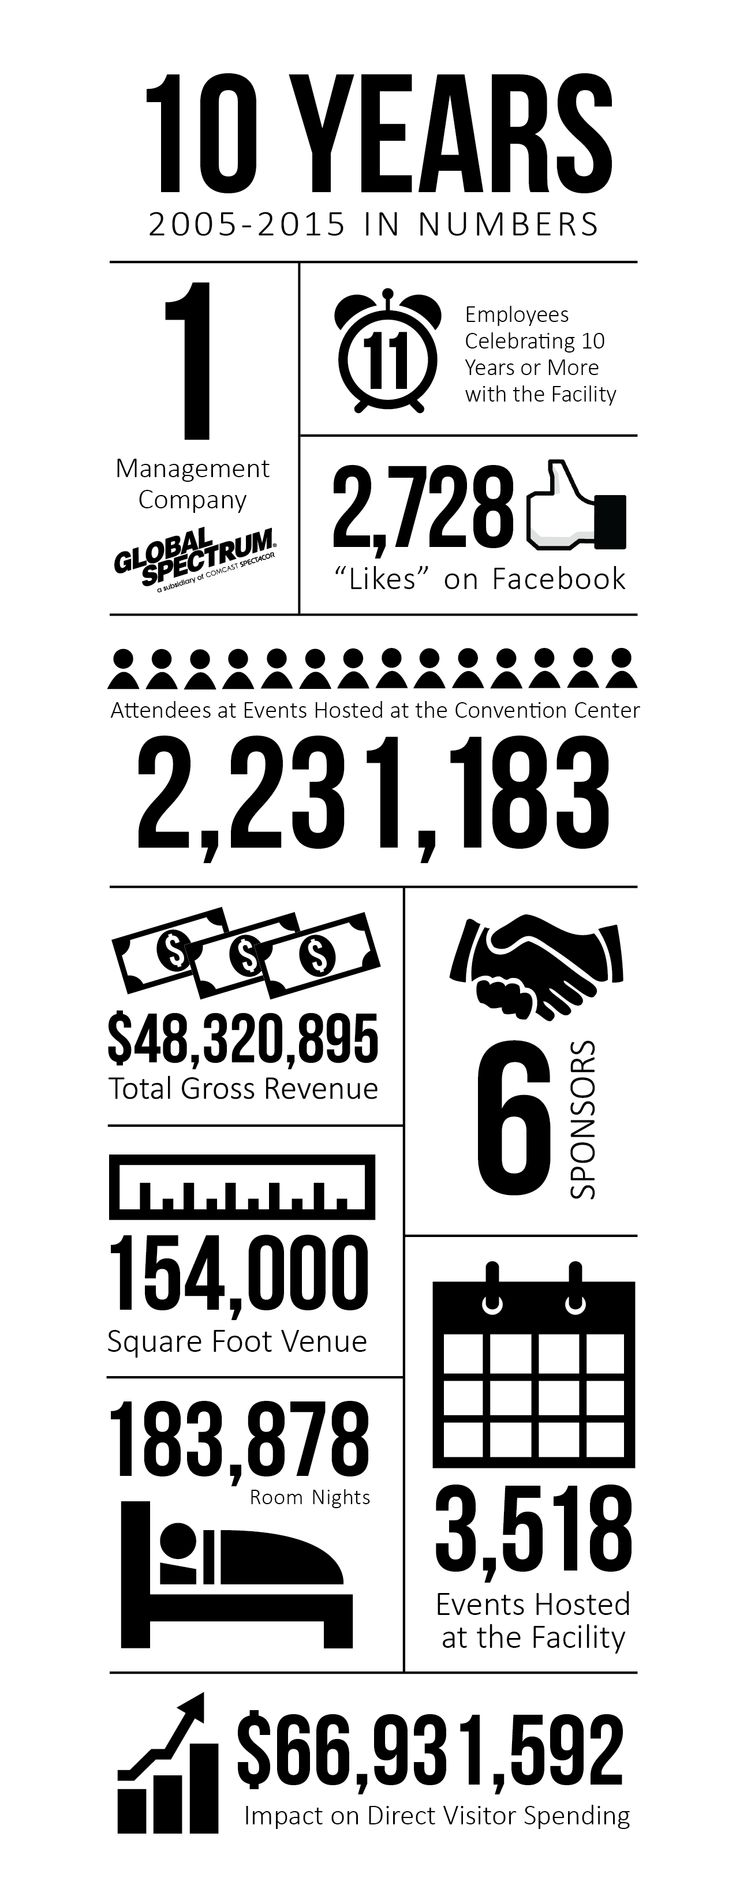 Infographic: St. Charles Convention Center Celebrates 10 Years in Numbers.